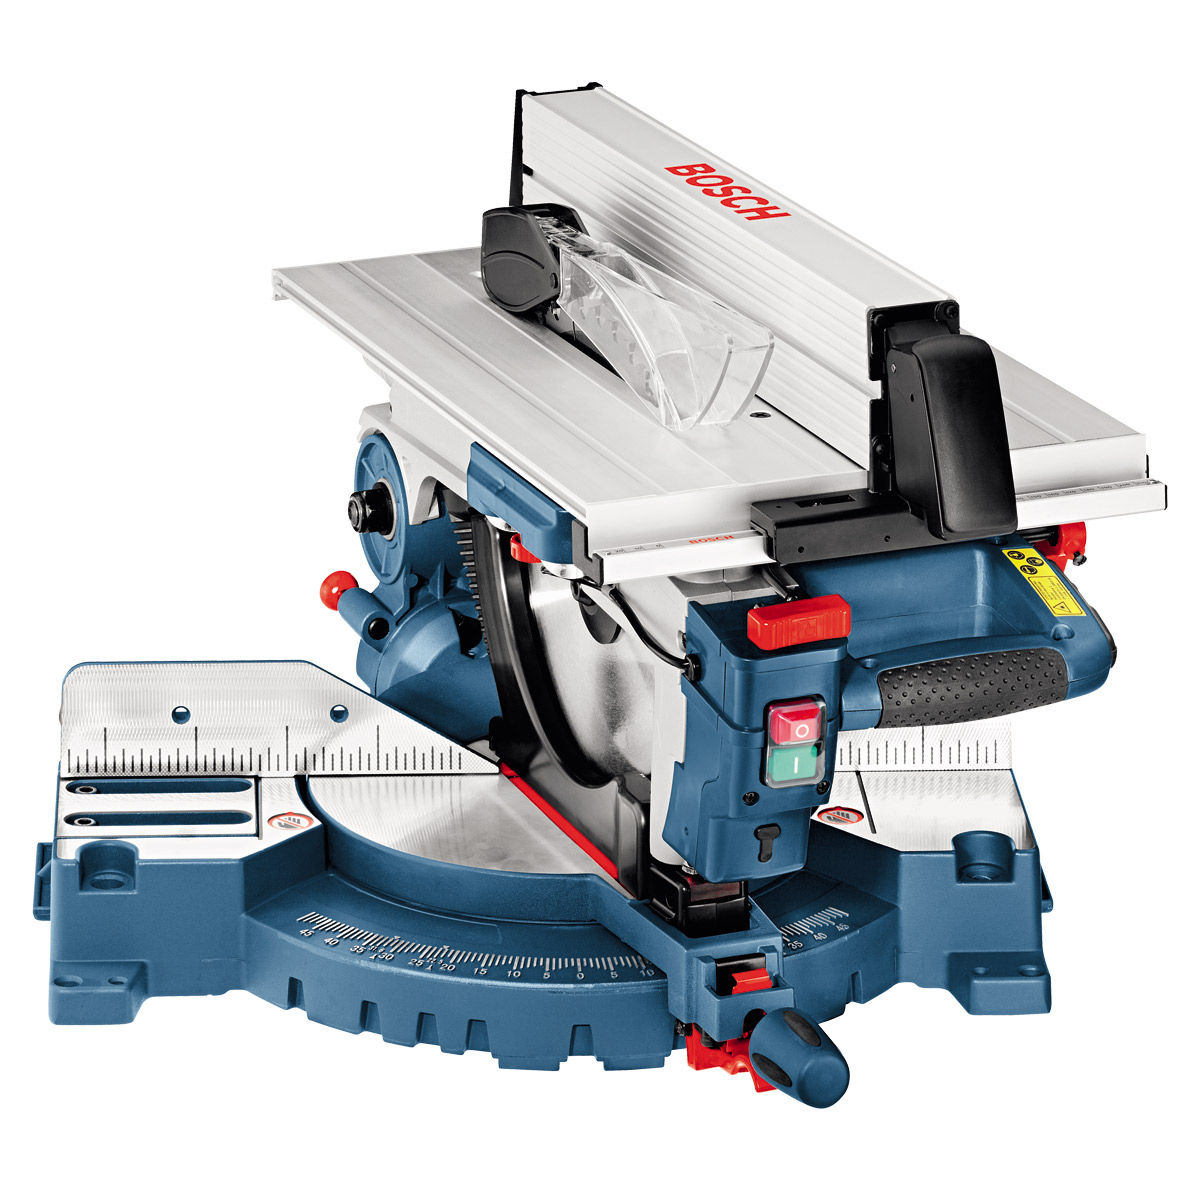 Bosch GTM12 Combination Mitre/Table Saw 110V